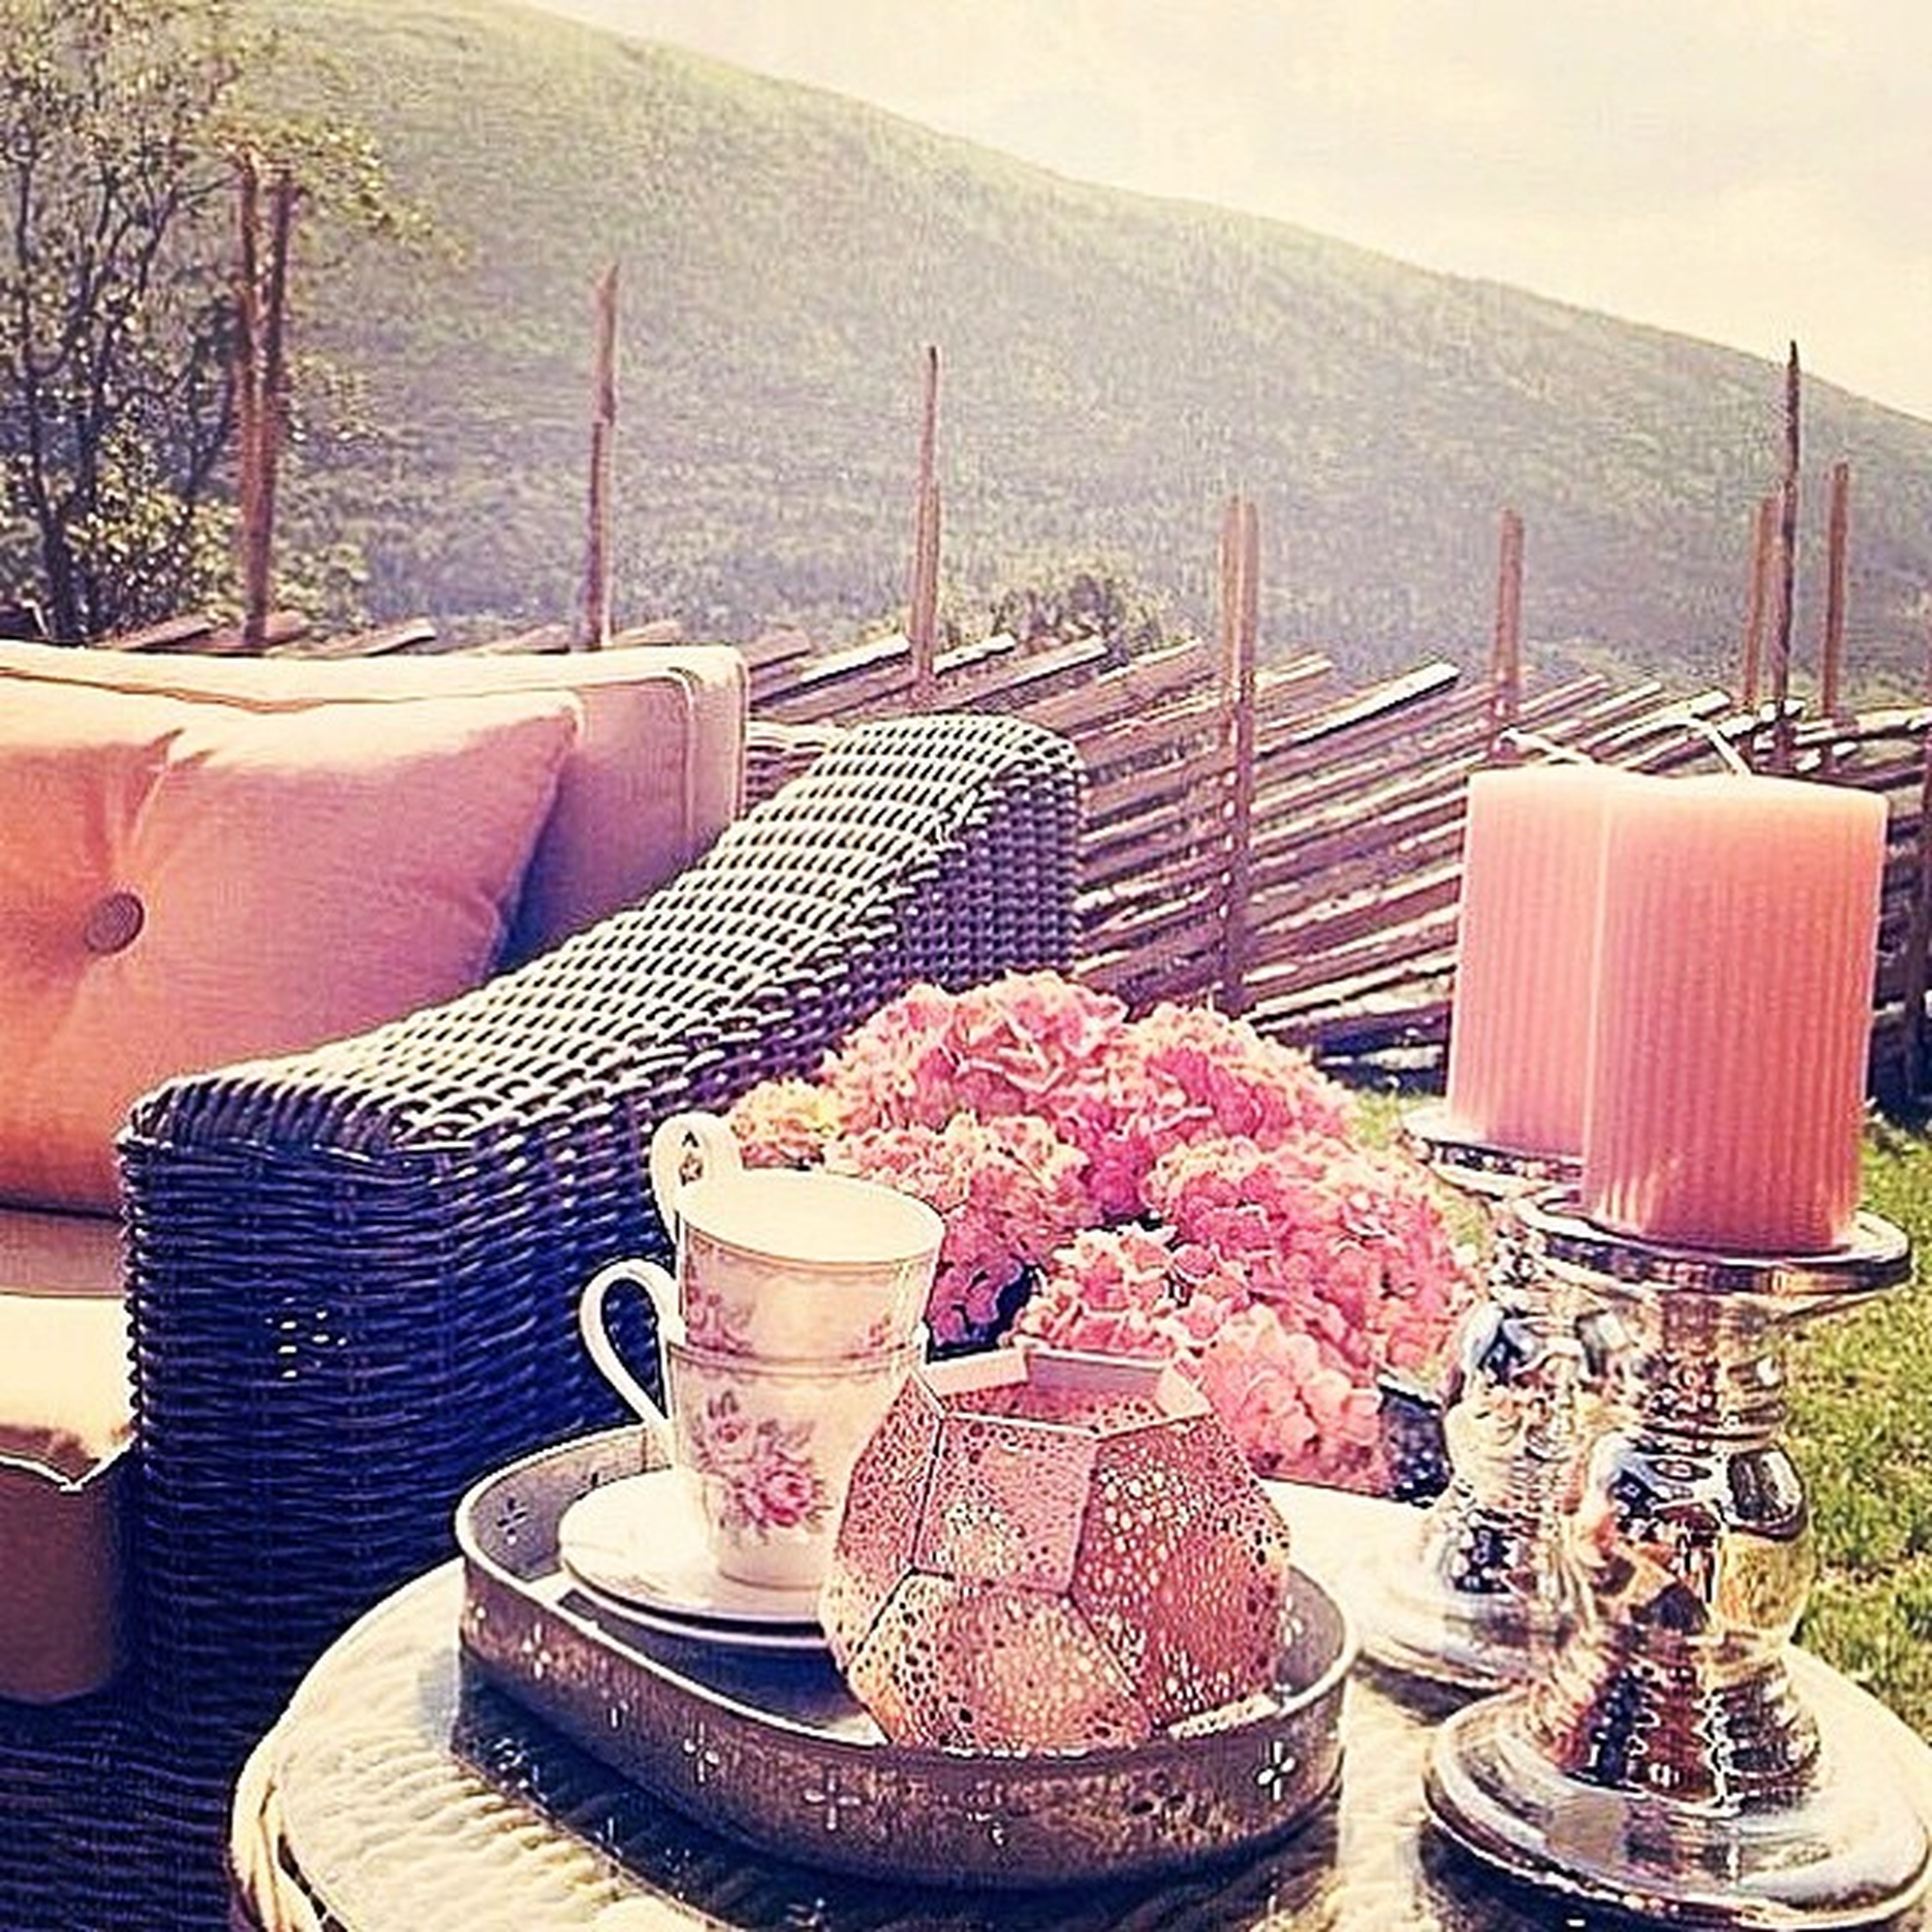 chair, table, freshness, flower, built structure, mountain, day, nature, high angle view, house, architecture, building exterior, roof, tree, outdoors, basket, no people, plant, absence, railing